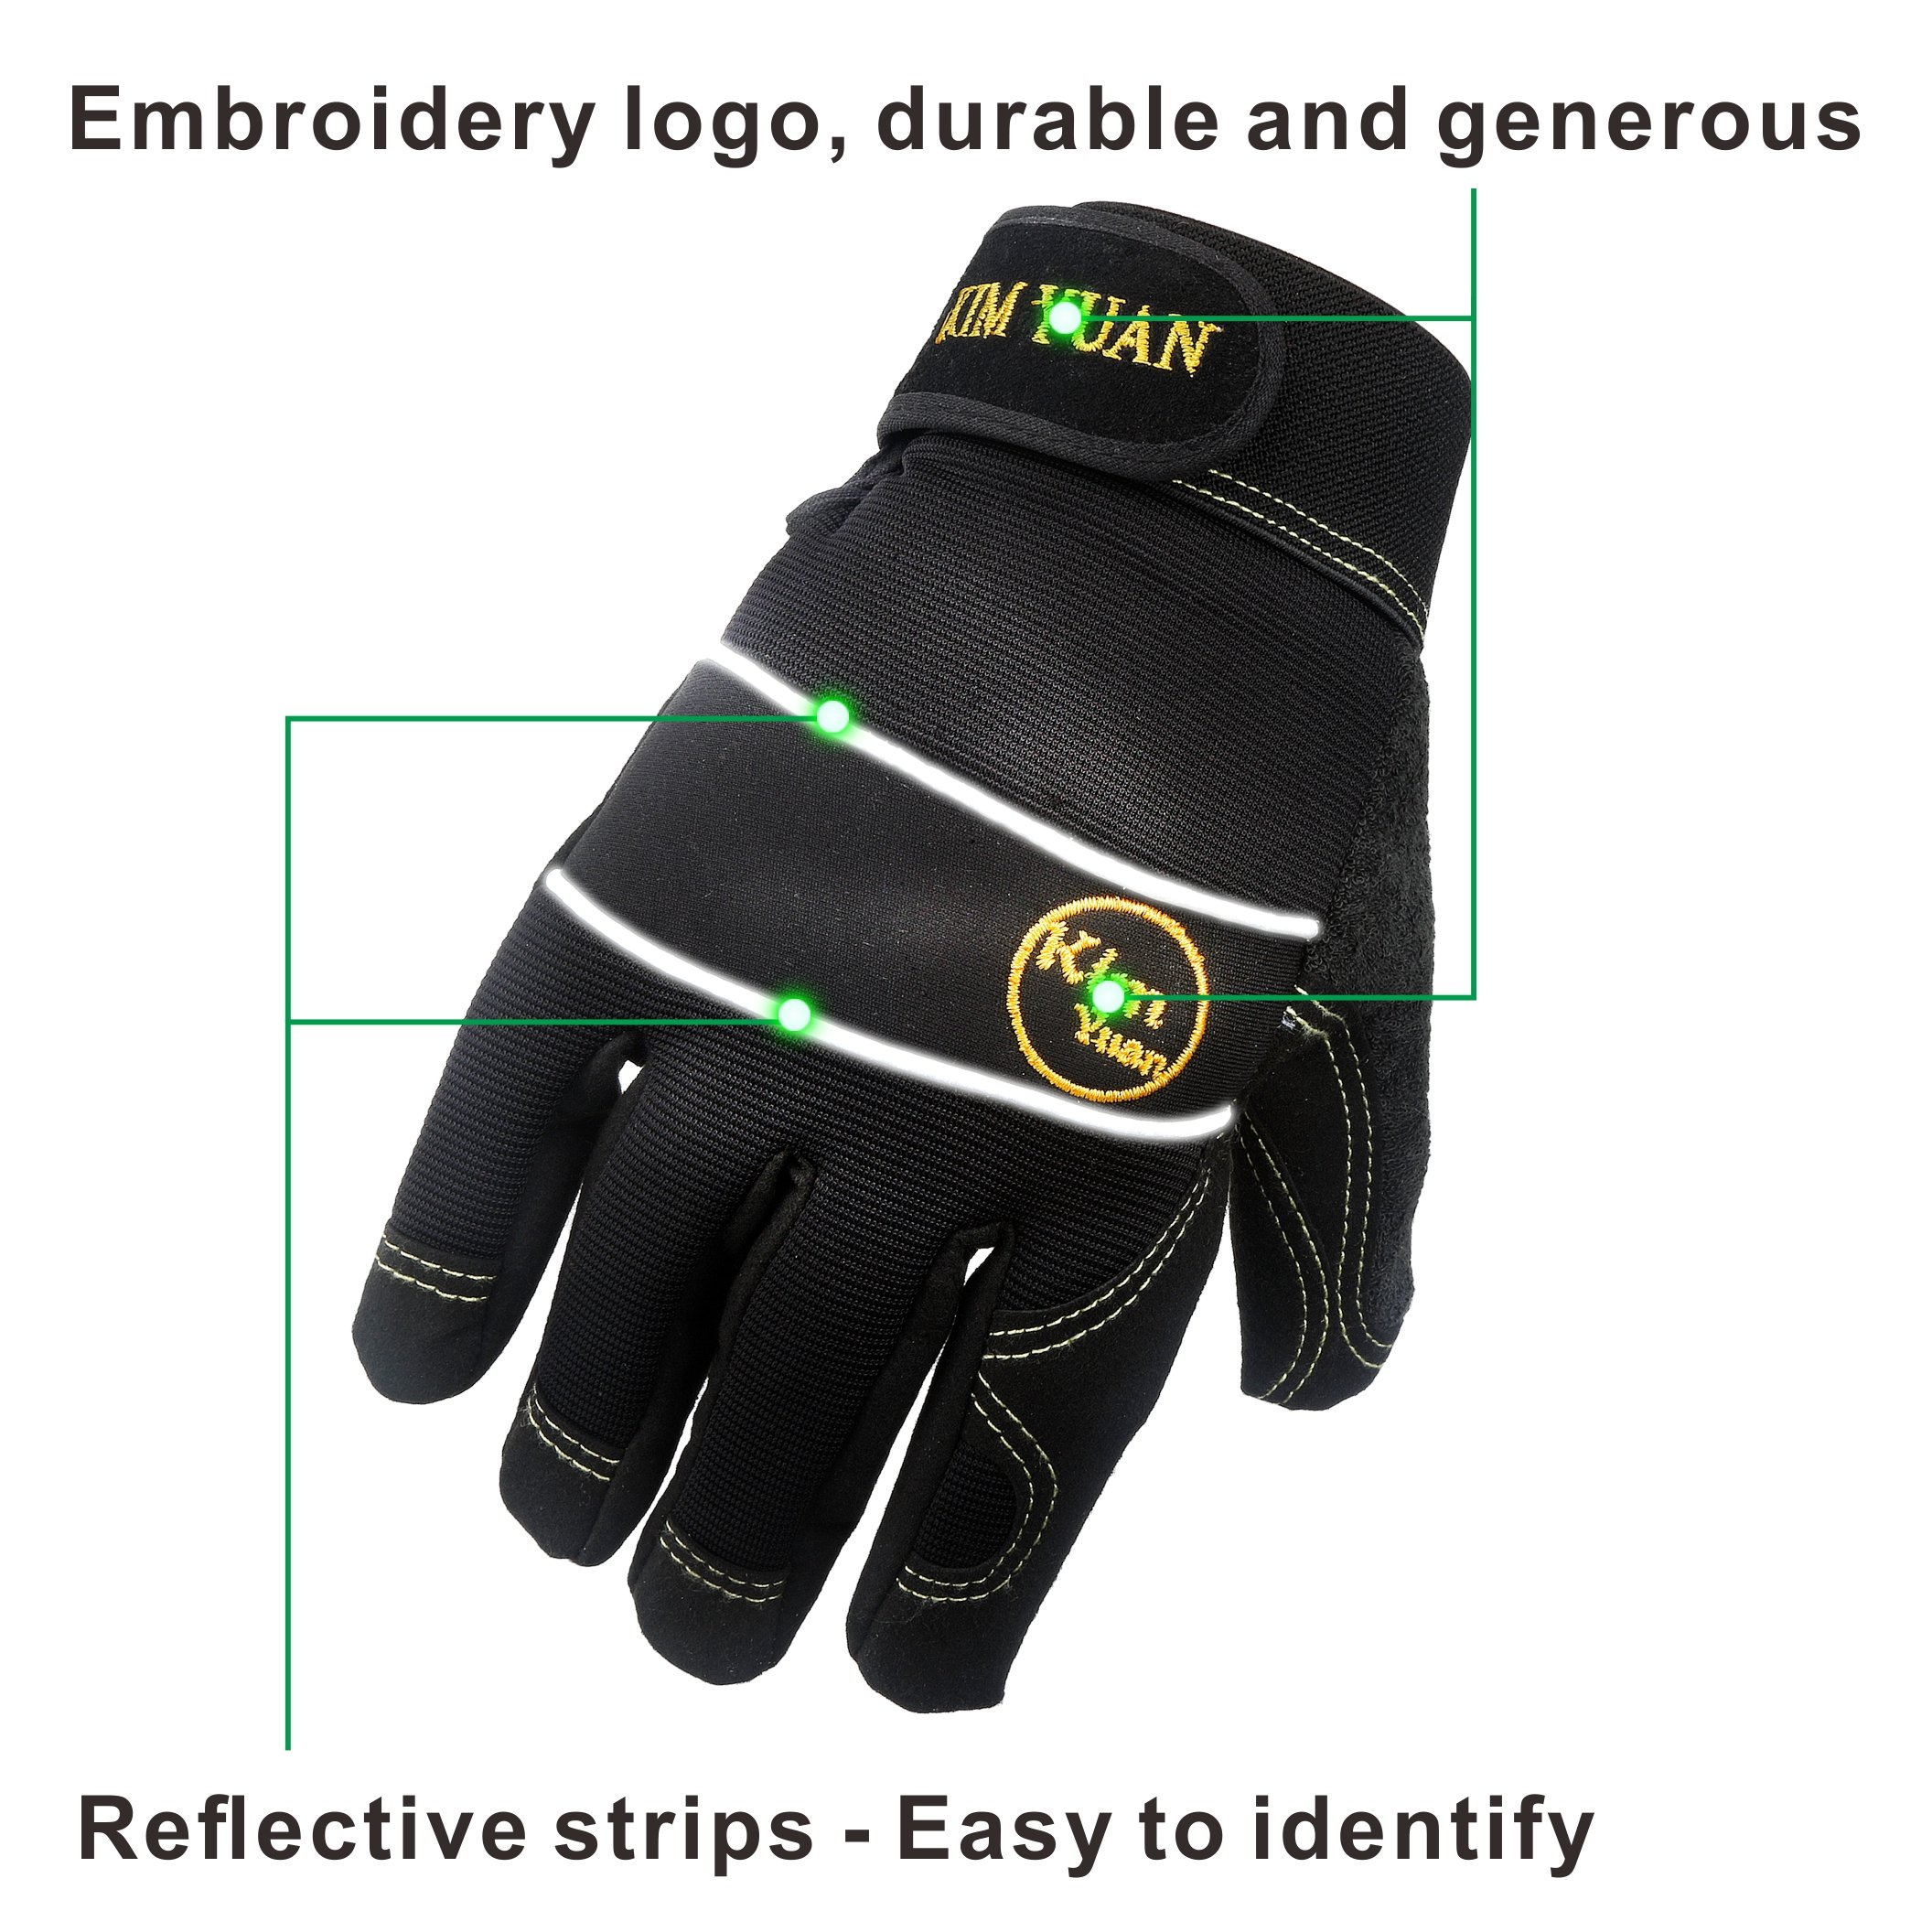 KIM YUAN Mechanic General Utility Breathable Work Gloves Touch Screen, Skid/Abrasion Resistant, Pefect for Warehouse, Construction, Outdoor, Men & Women, XL by KIM YUAN (Image #3)